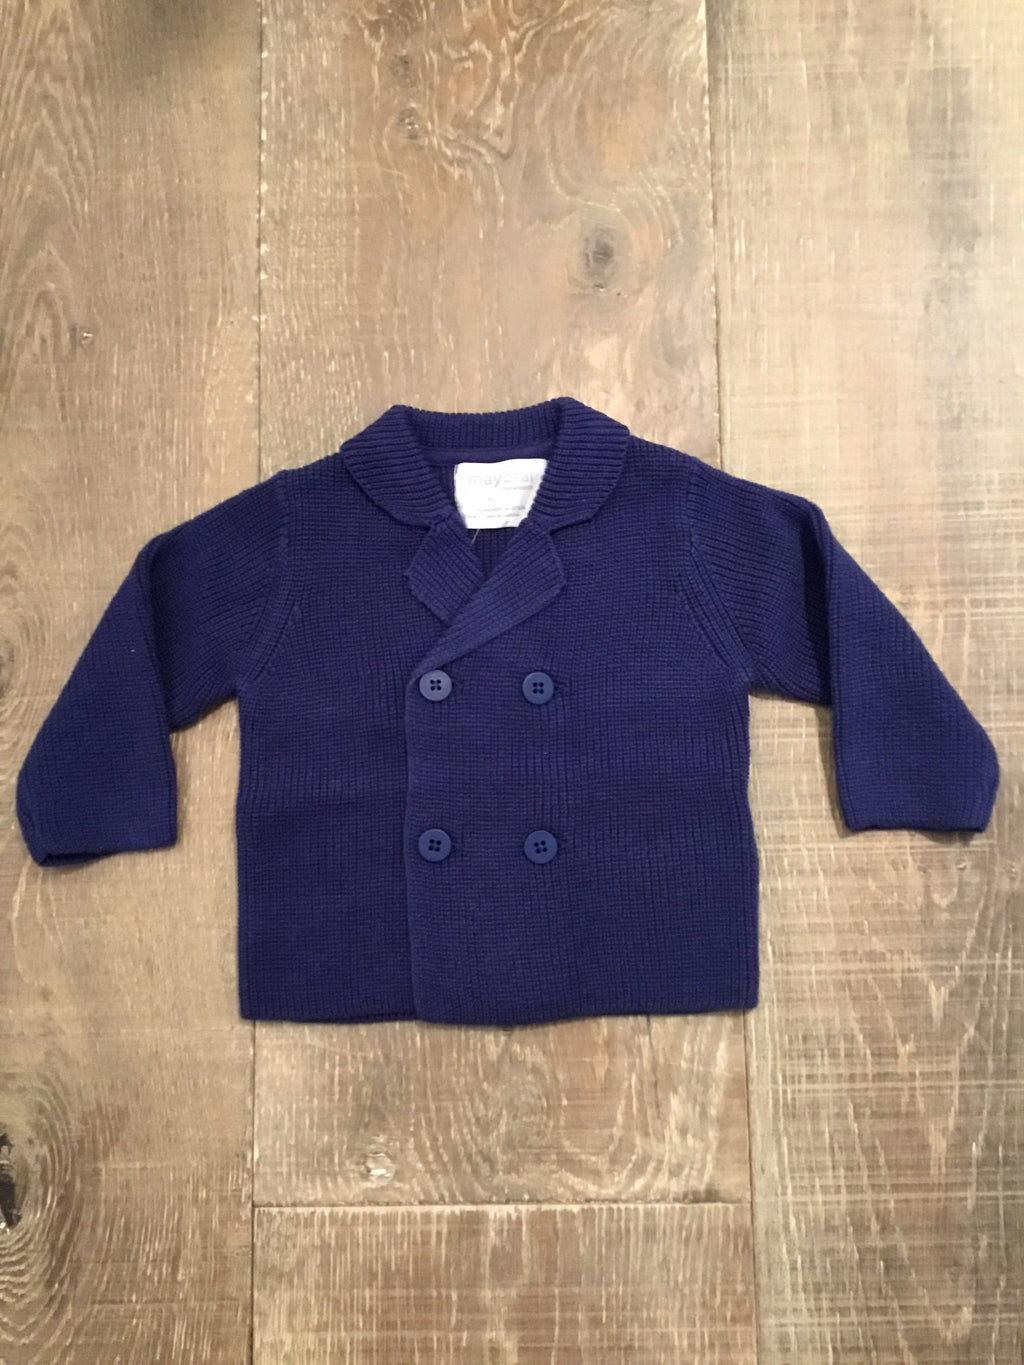 Atlantic Blue Knit Jacket